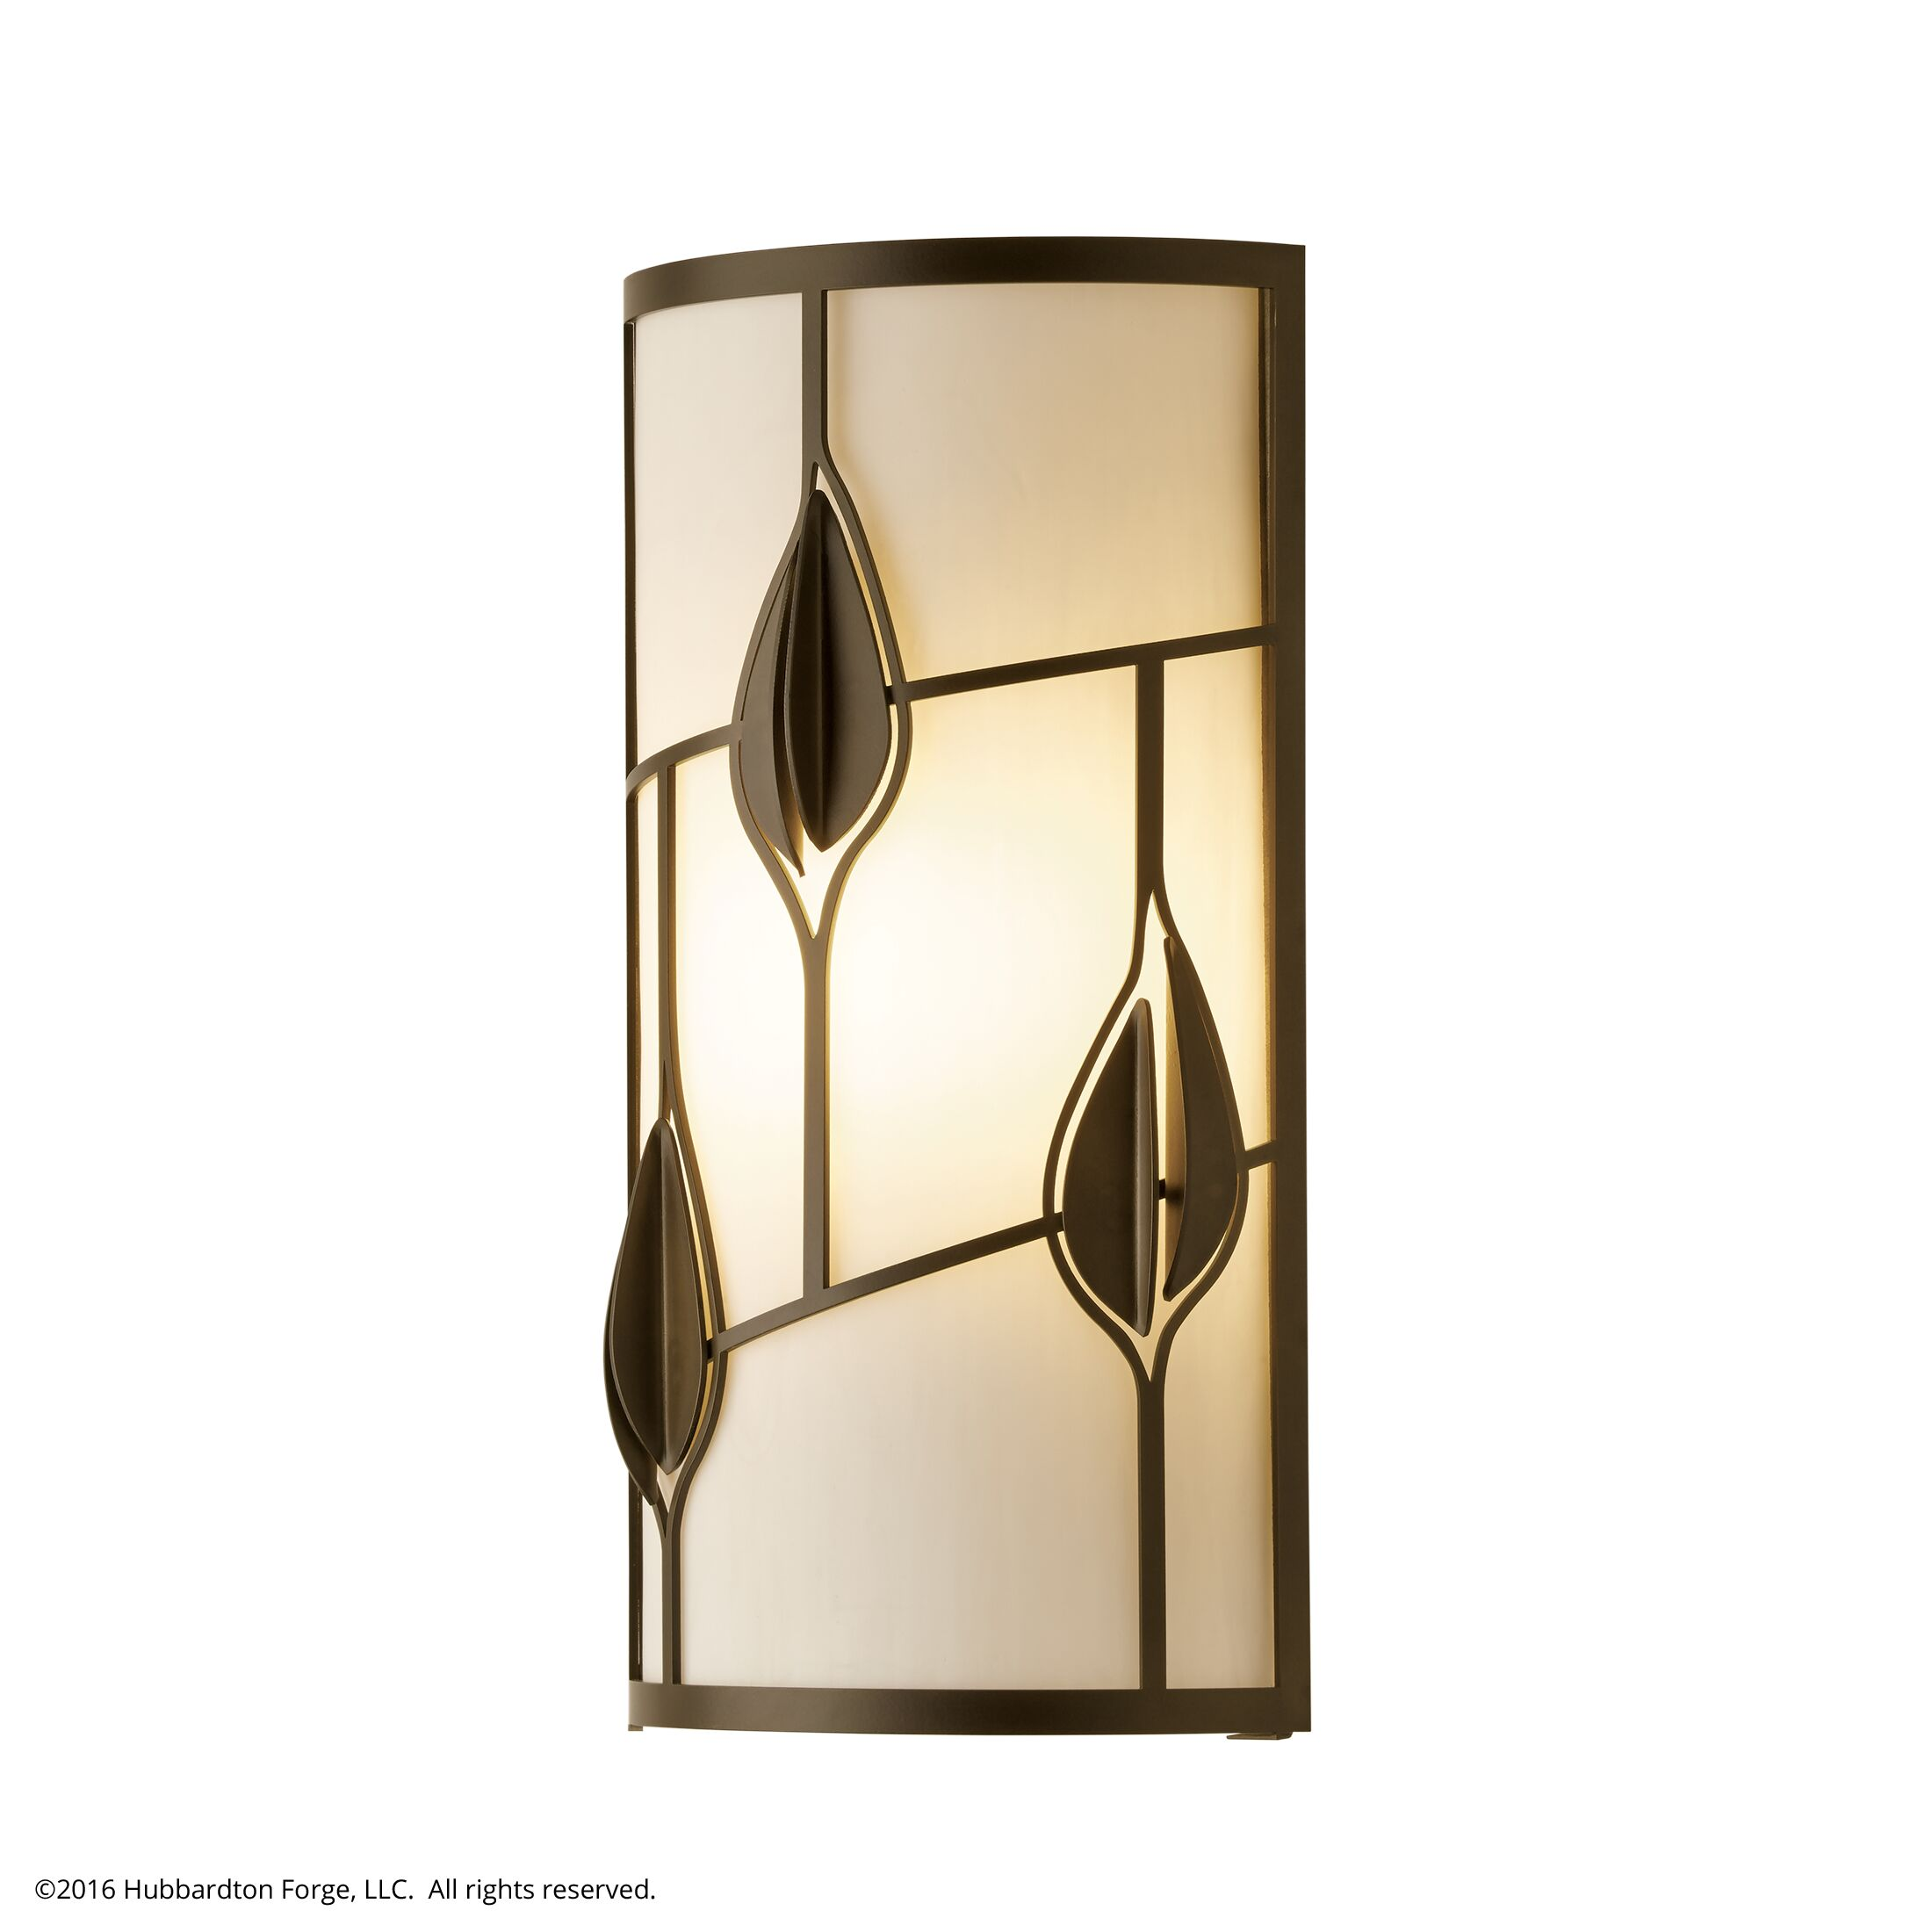 Product Detail: Alison's Leaves Sconce